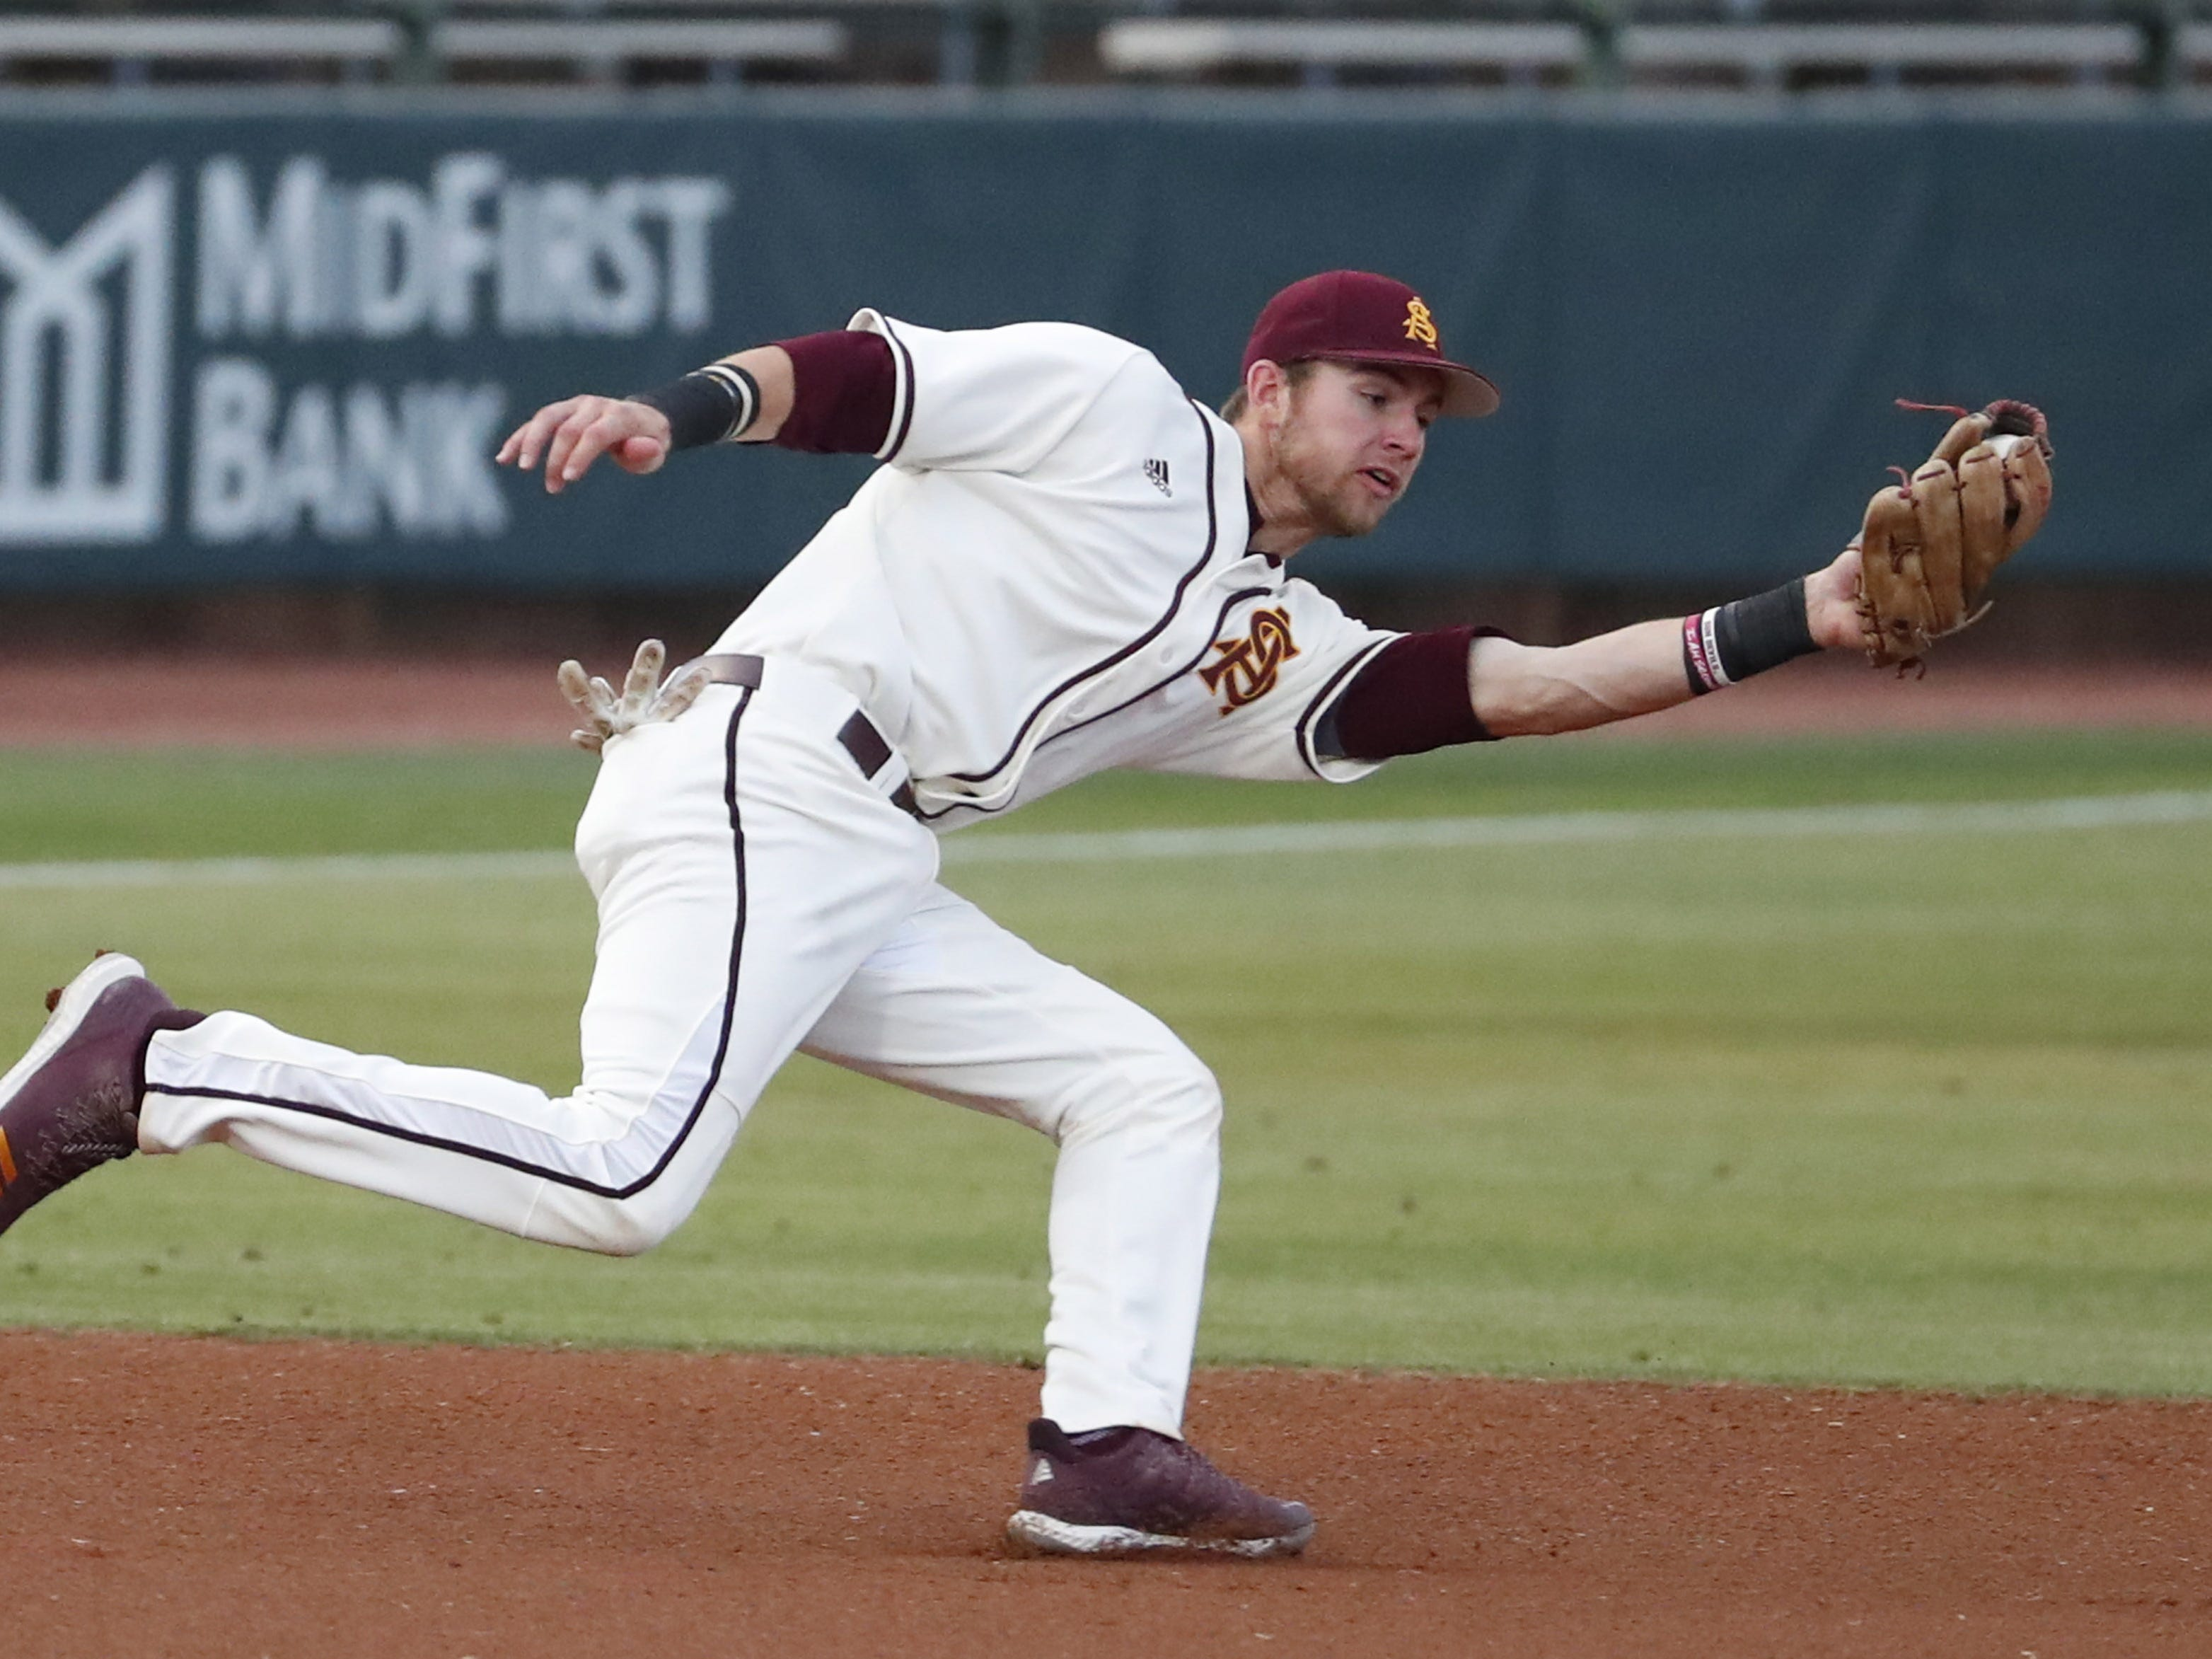 ASU third baseman Gage Workman fields an infield hit against UNLV during the first inning in Phoenix April 23, 2019.